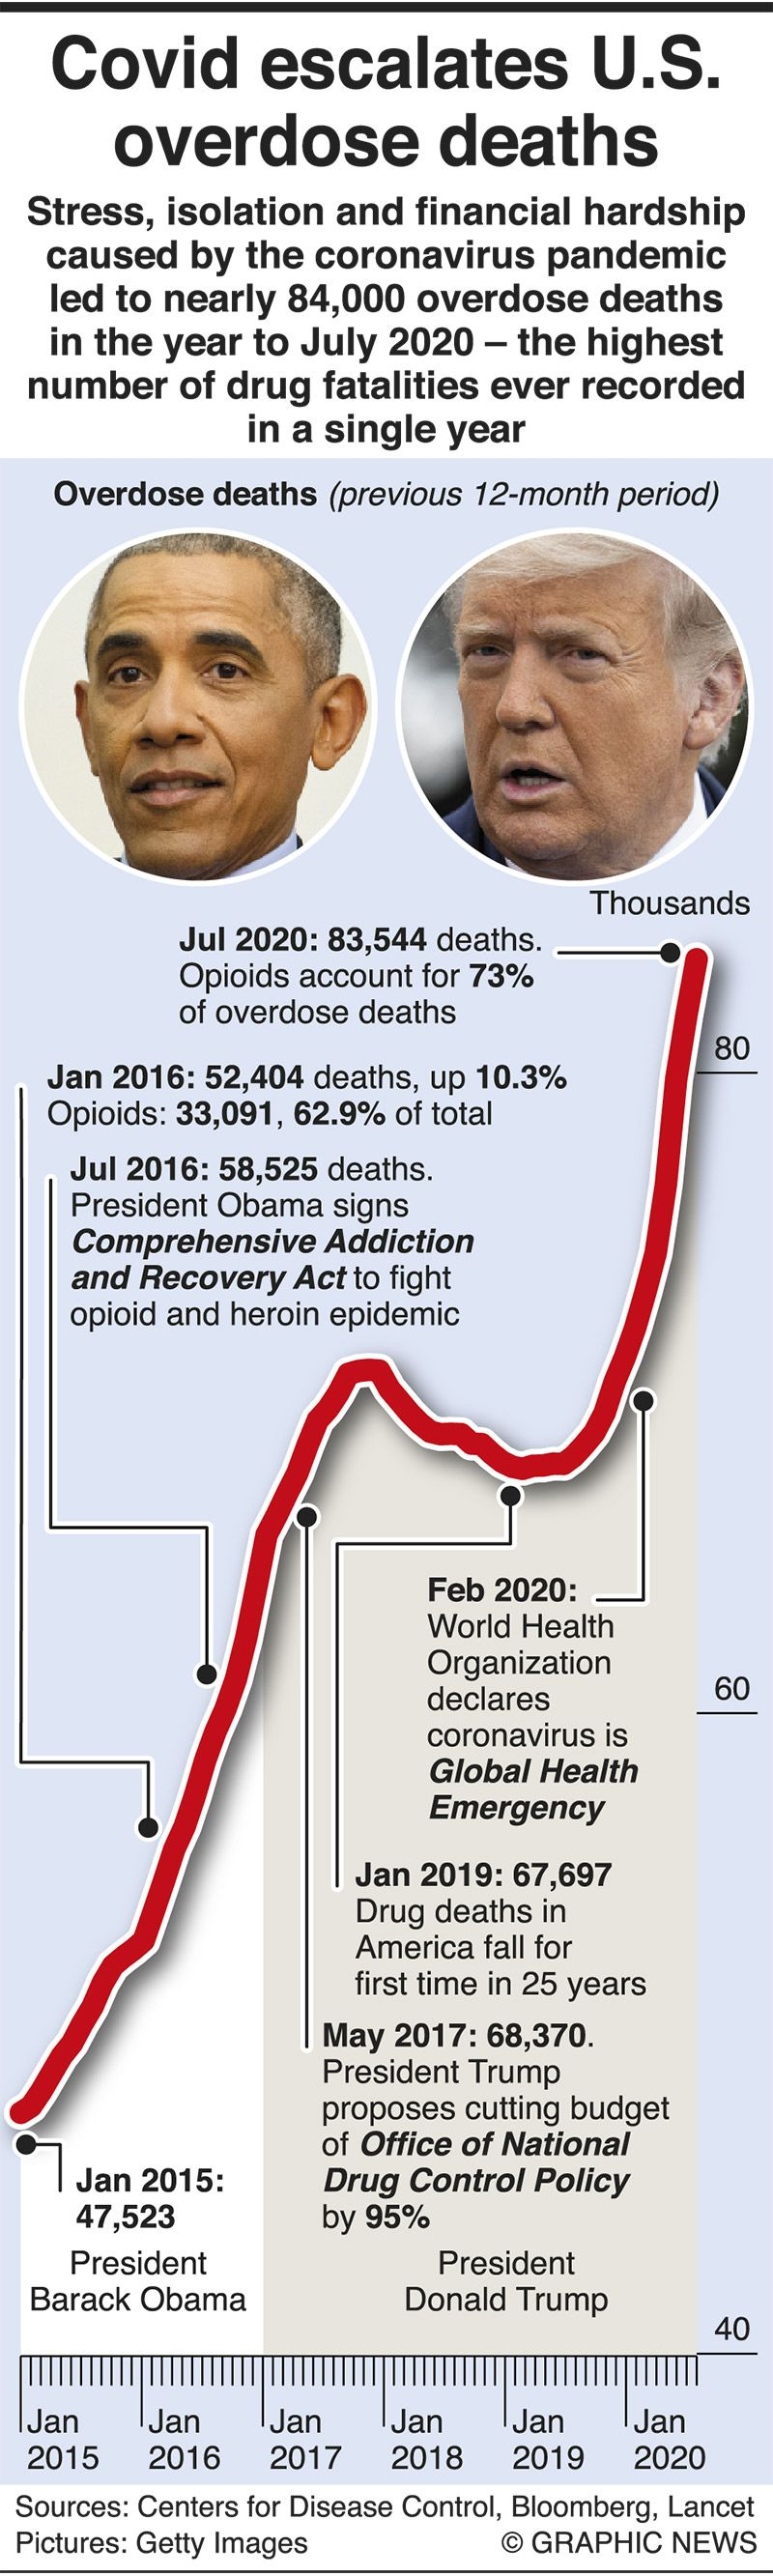 Infographic: Pandemic escalates overdose deaths in US